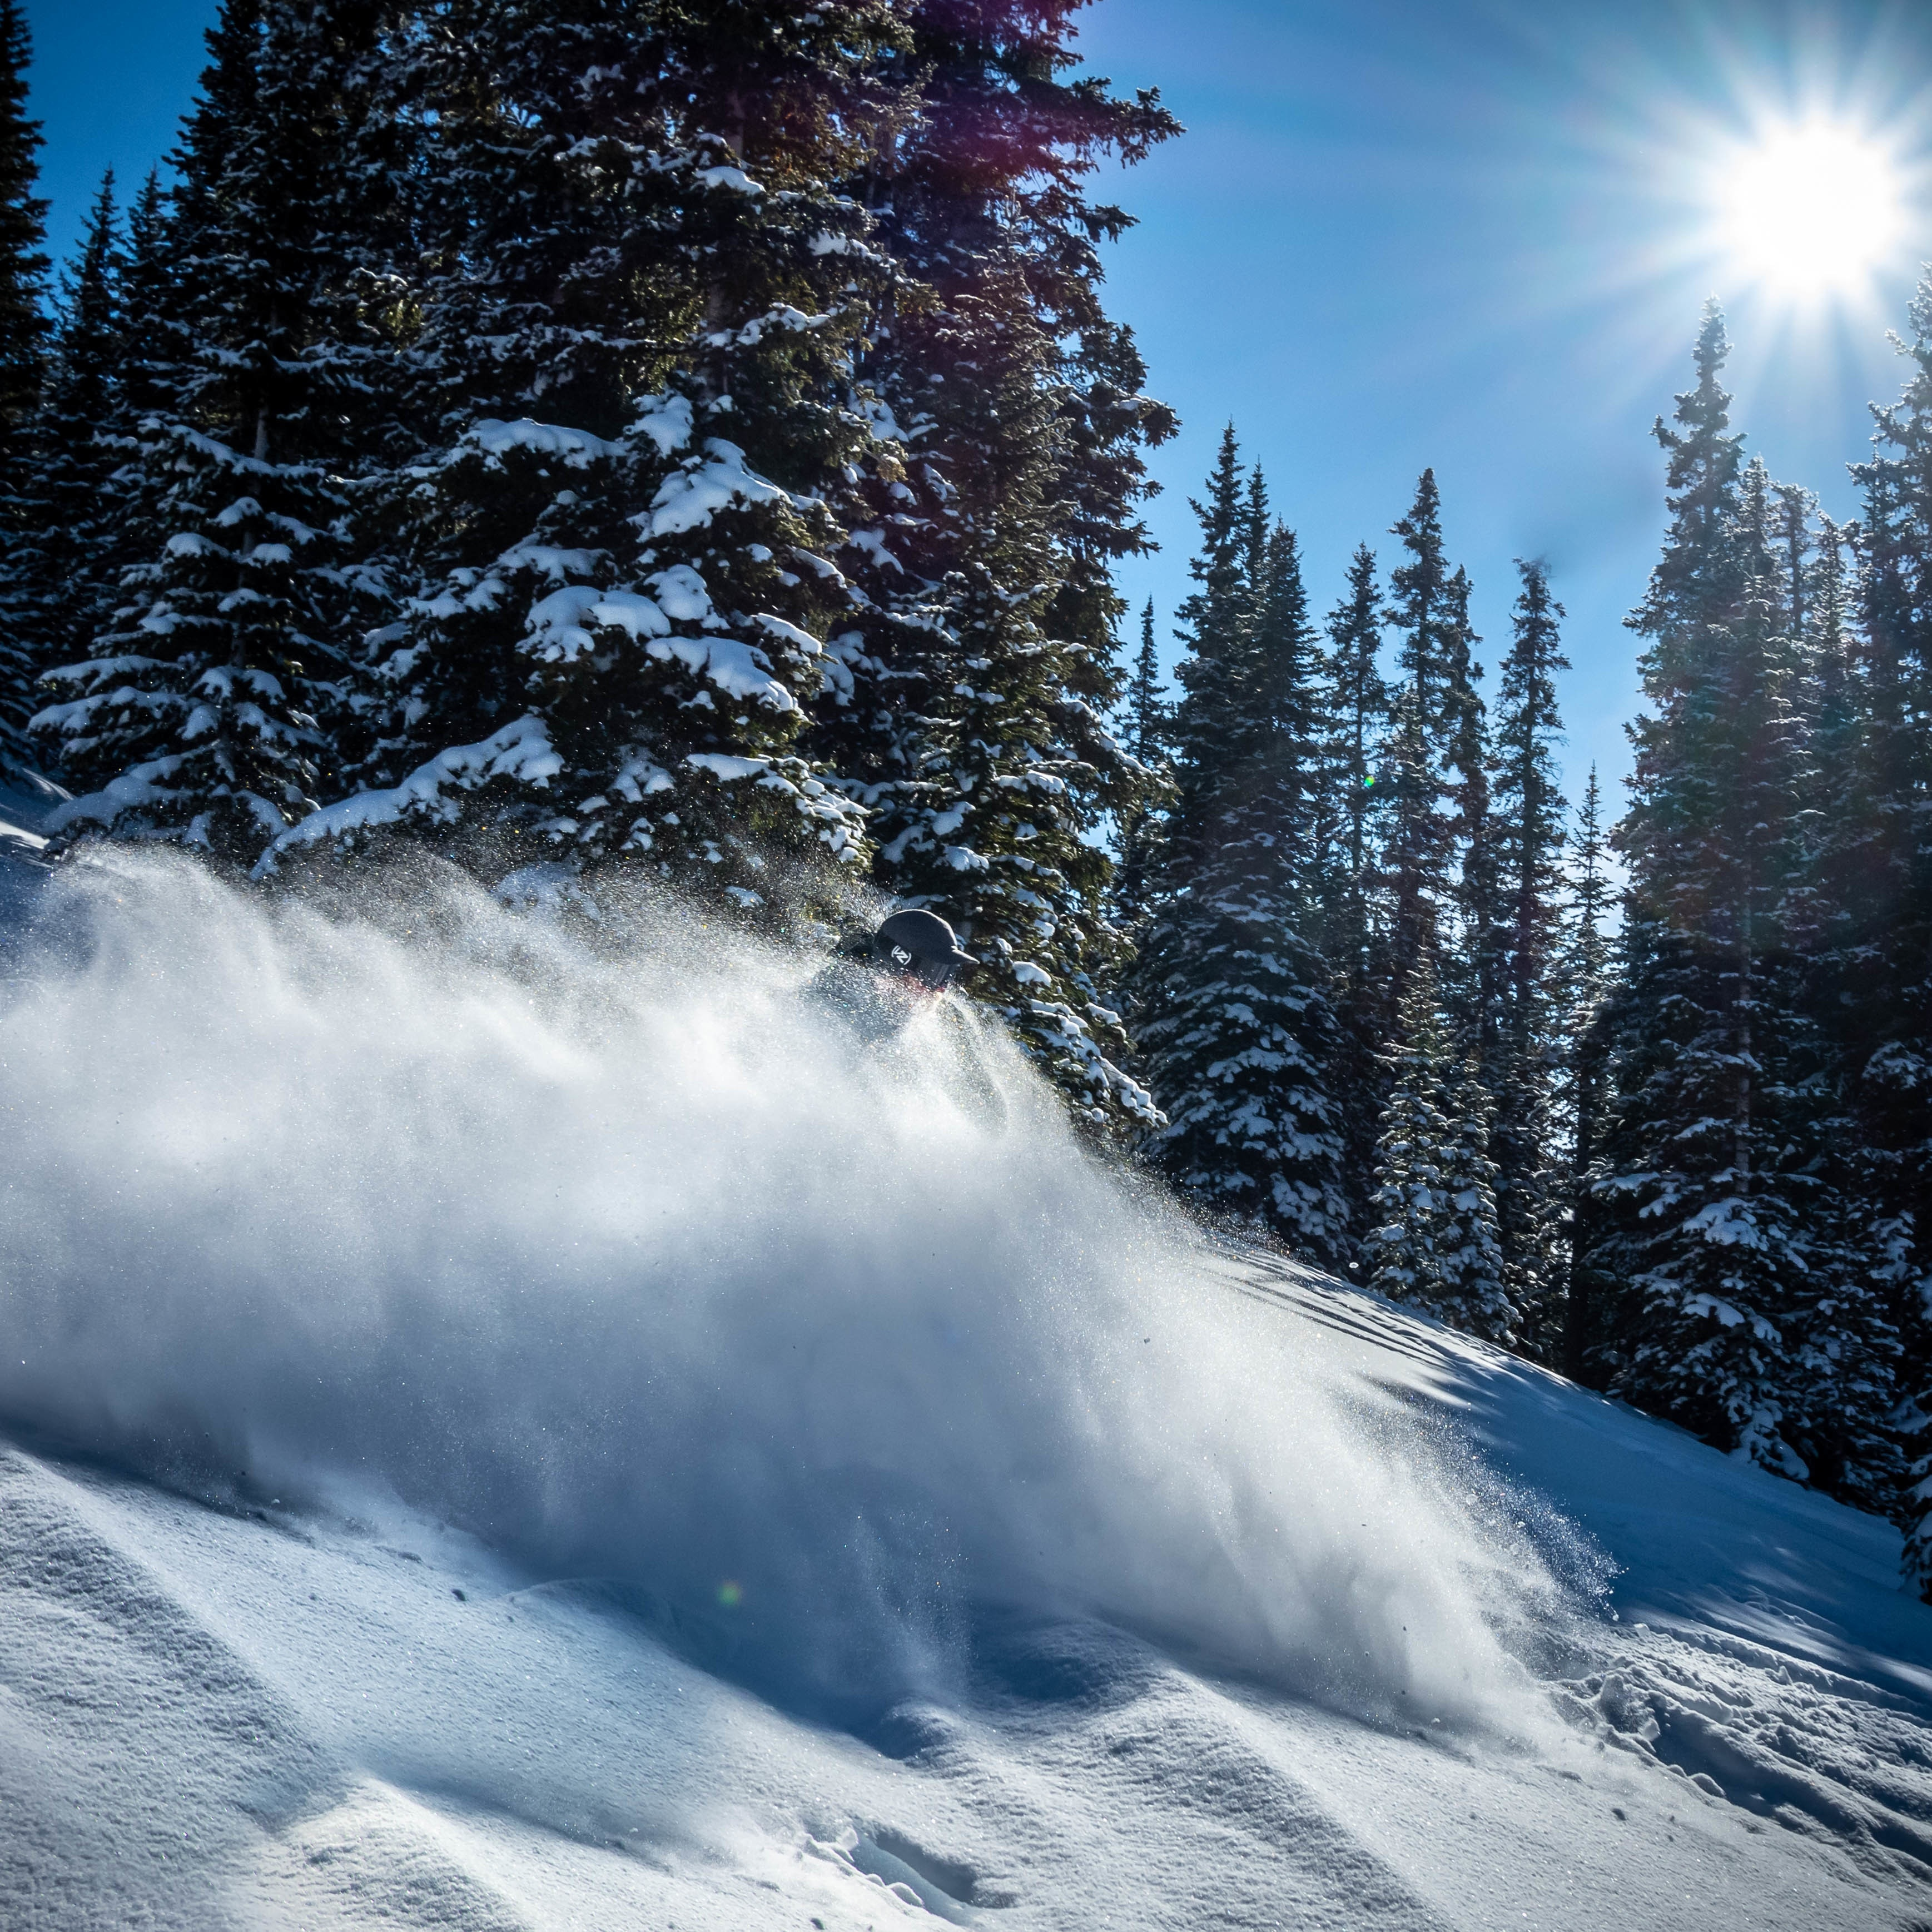 East Vail, Colorado, United States of America